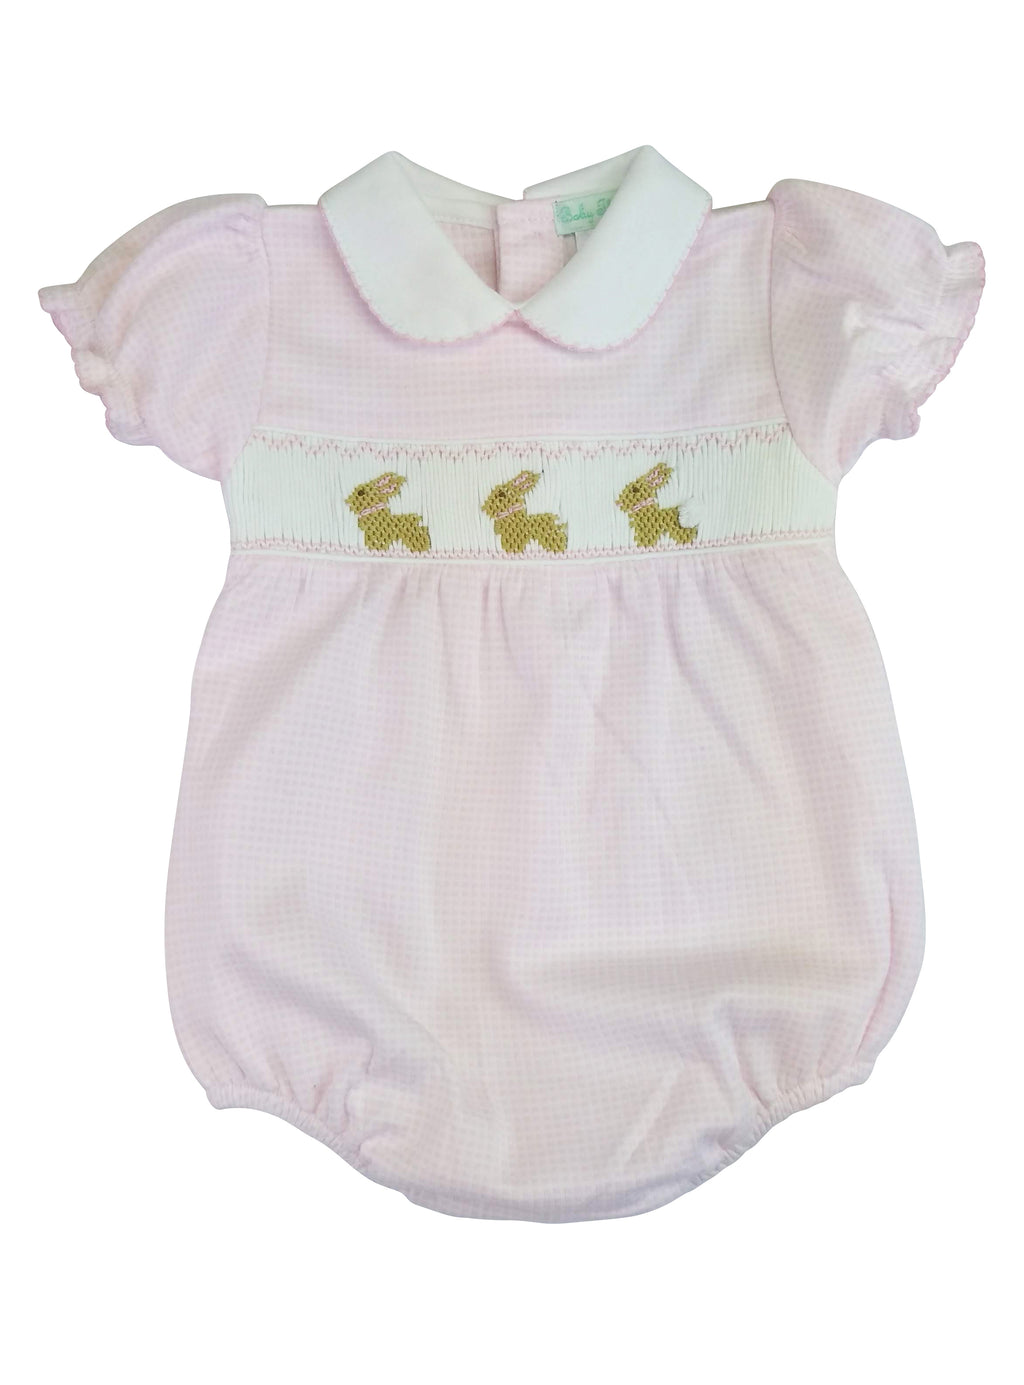 Baby Girl's Pink Checkered Bunny Onesie - Little Threads Inc. Children's Clothing